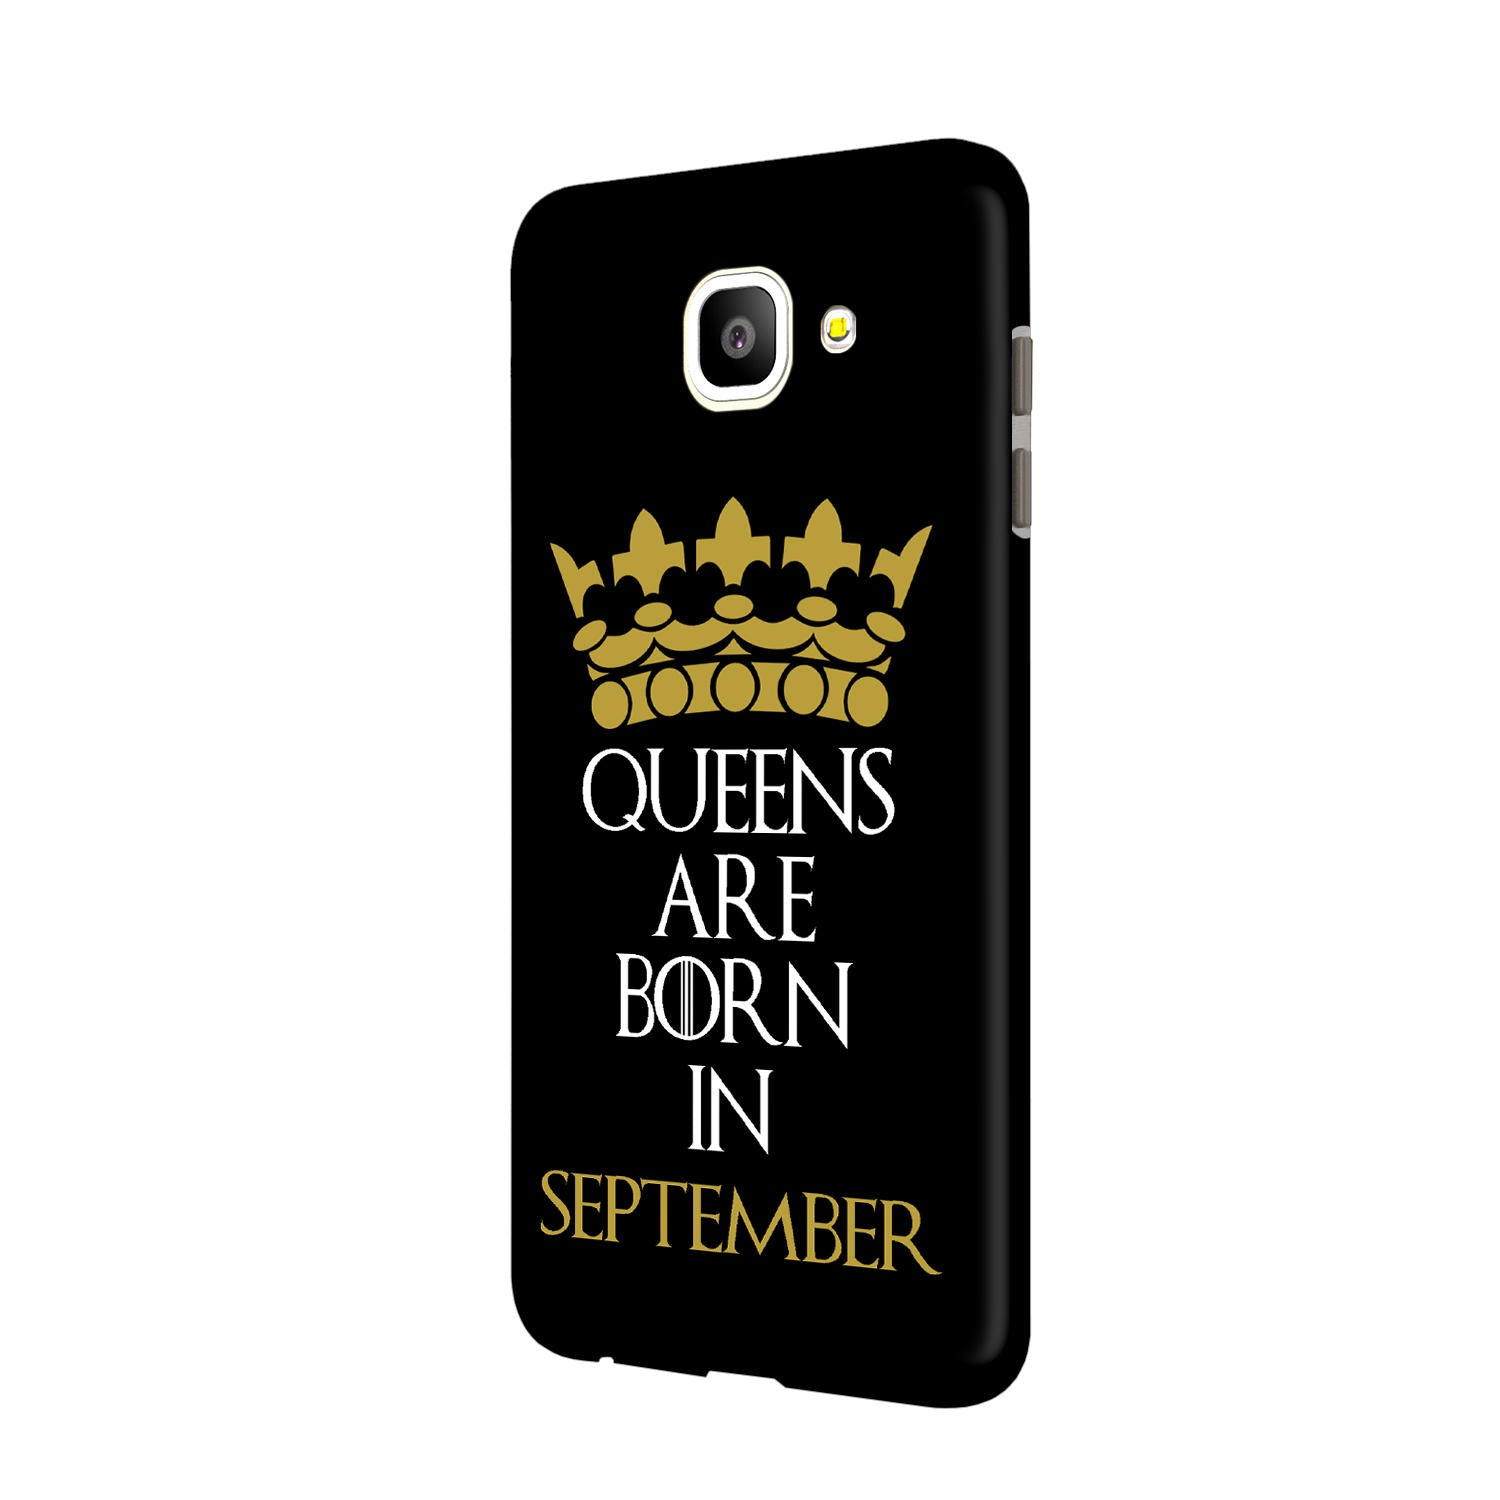 Queens September Samsung Galaxy J7 Max Mobile Cover Case - MADANYU